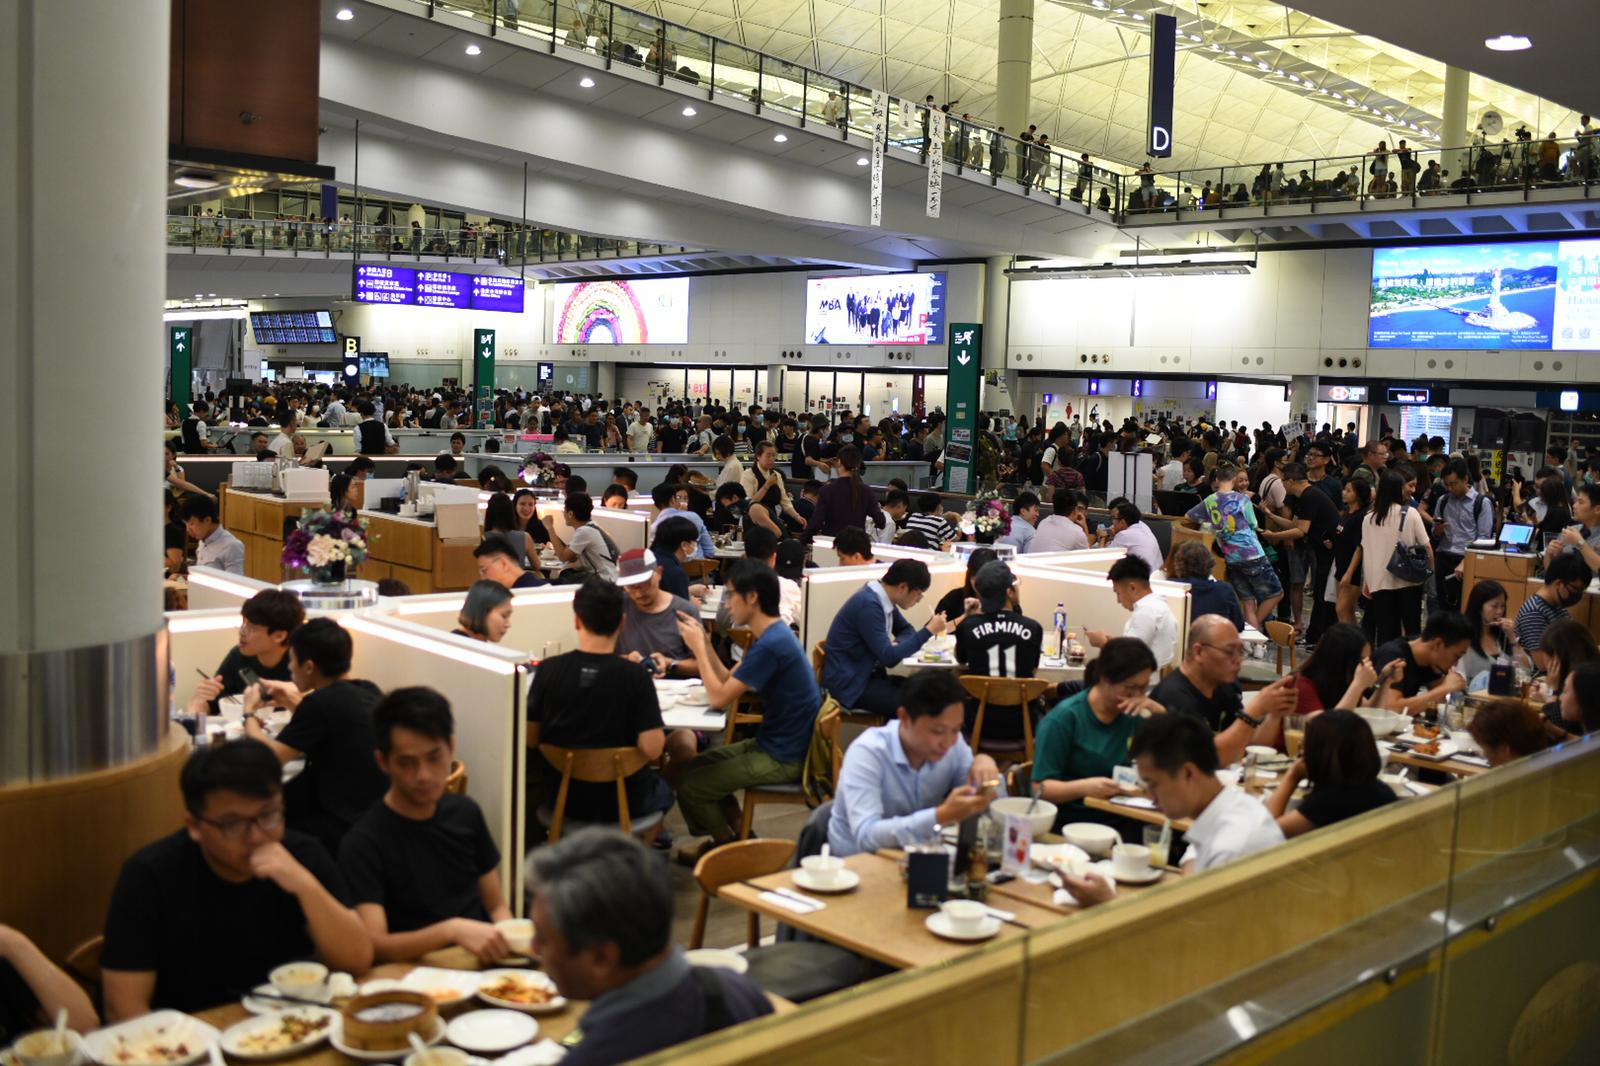 Customers pack the airport's restaurant which are open on the second night of airport disruption.